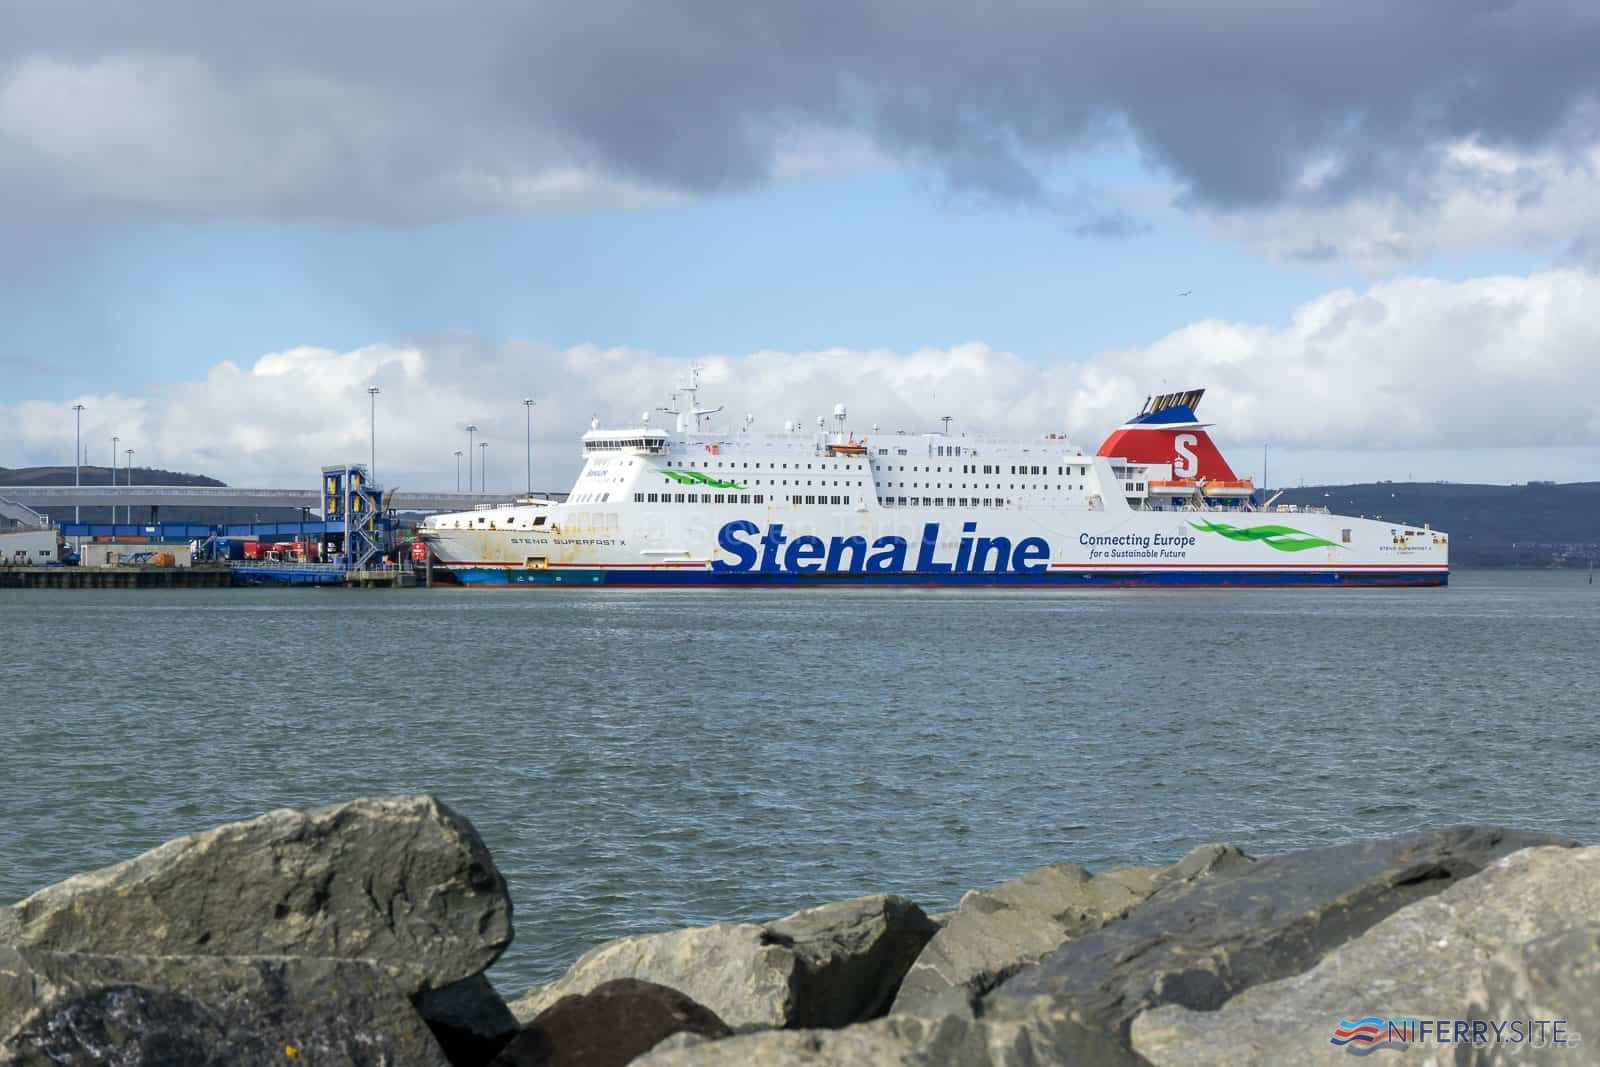 STENA SUPERFAST X prepares to discharge her cargo for the list time in Stena Line service. The ship would later leave Belfast for Greece ahead of starting a new life as an overnight ferry between France and Africa. Copyright © Steven Tarbox / niferry.co.uk.